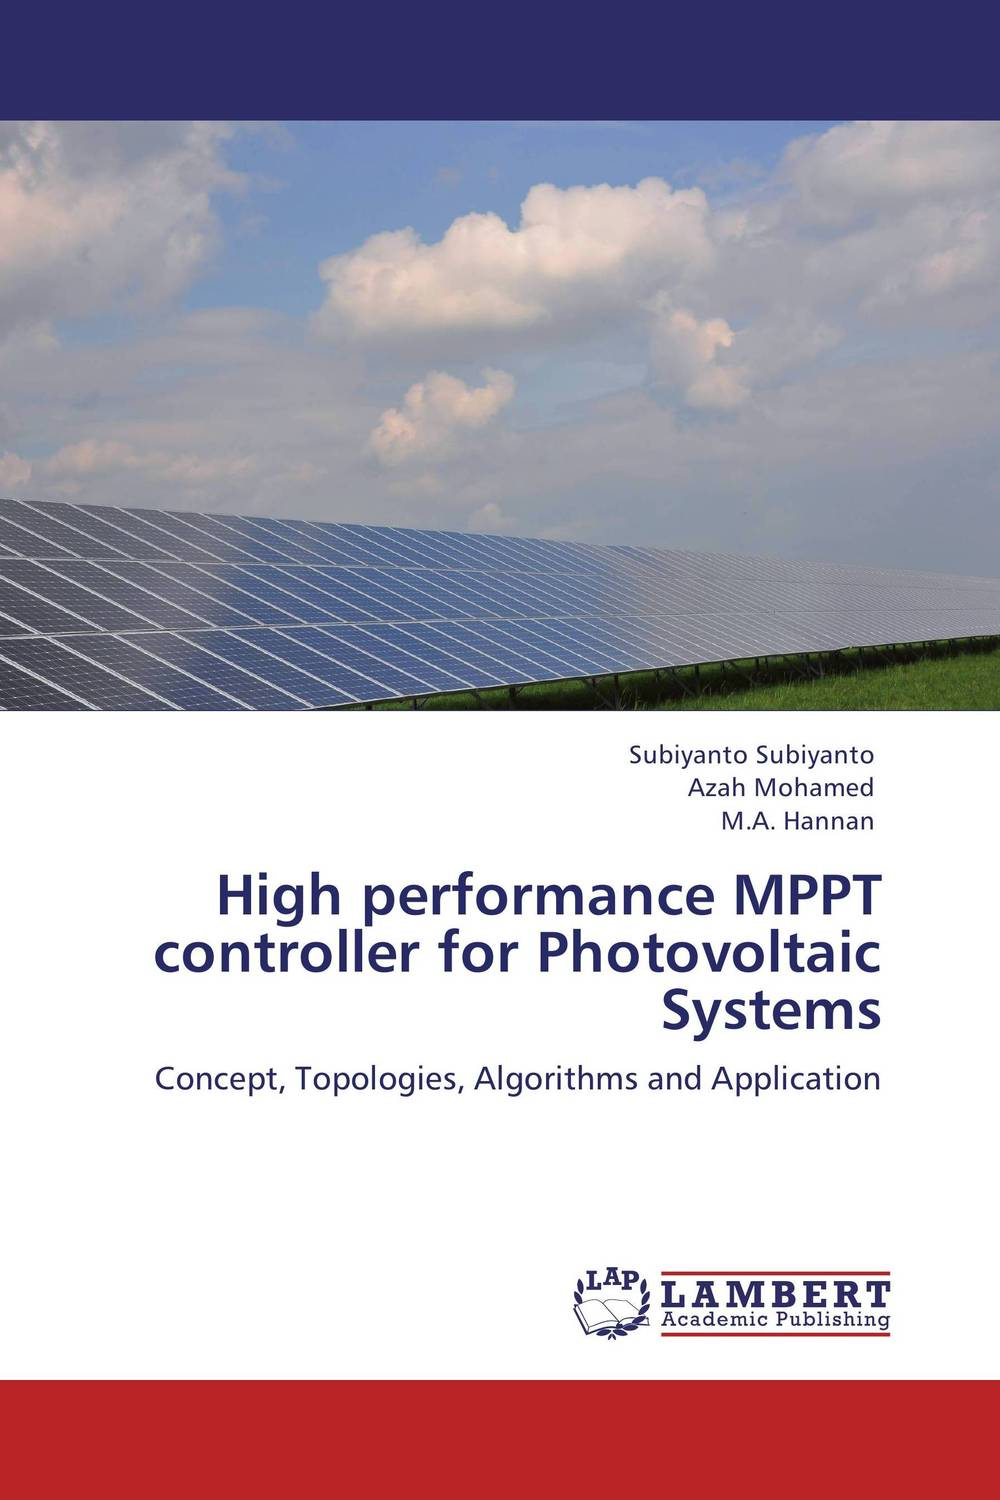 High performance MPPT controller for Photovoltaic Systems mppt based wind energy conversion system